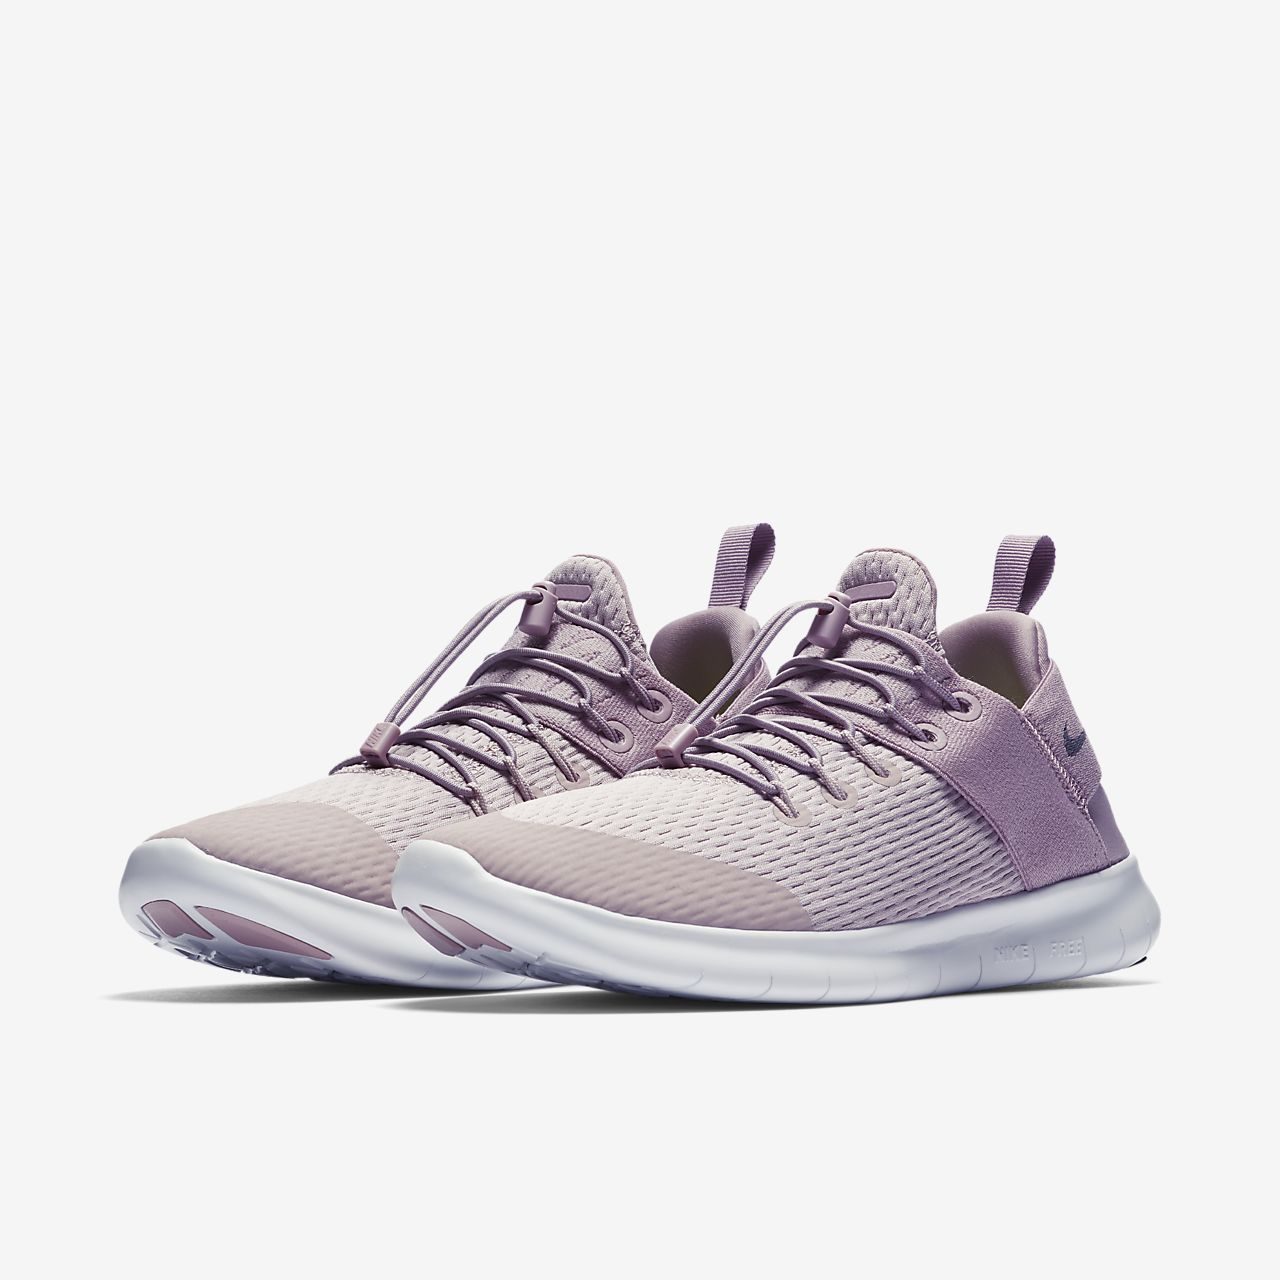 info for 11e9a 775c1 nike free run womens